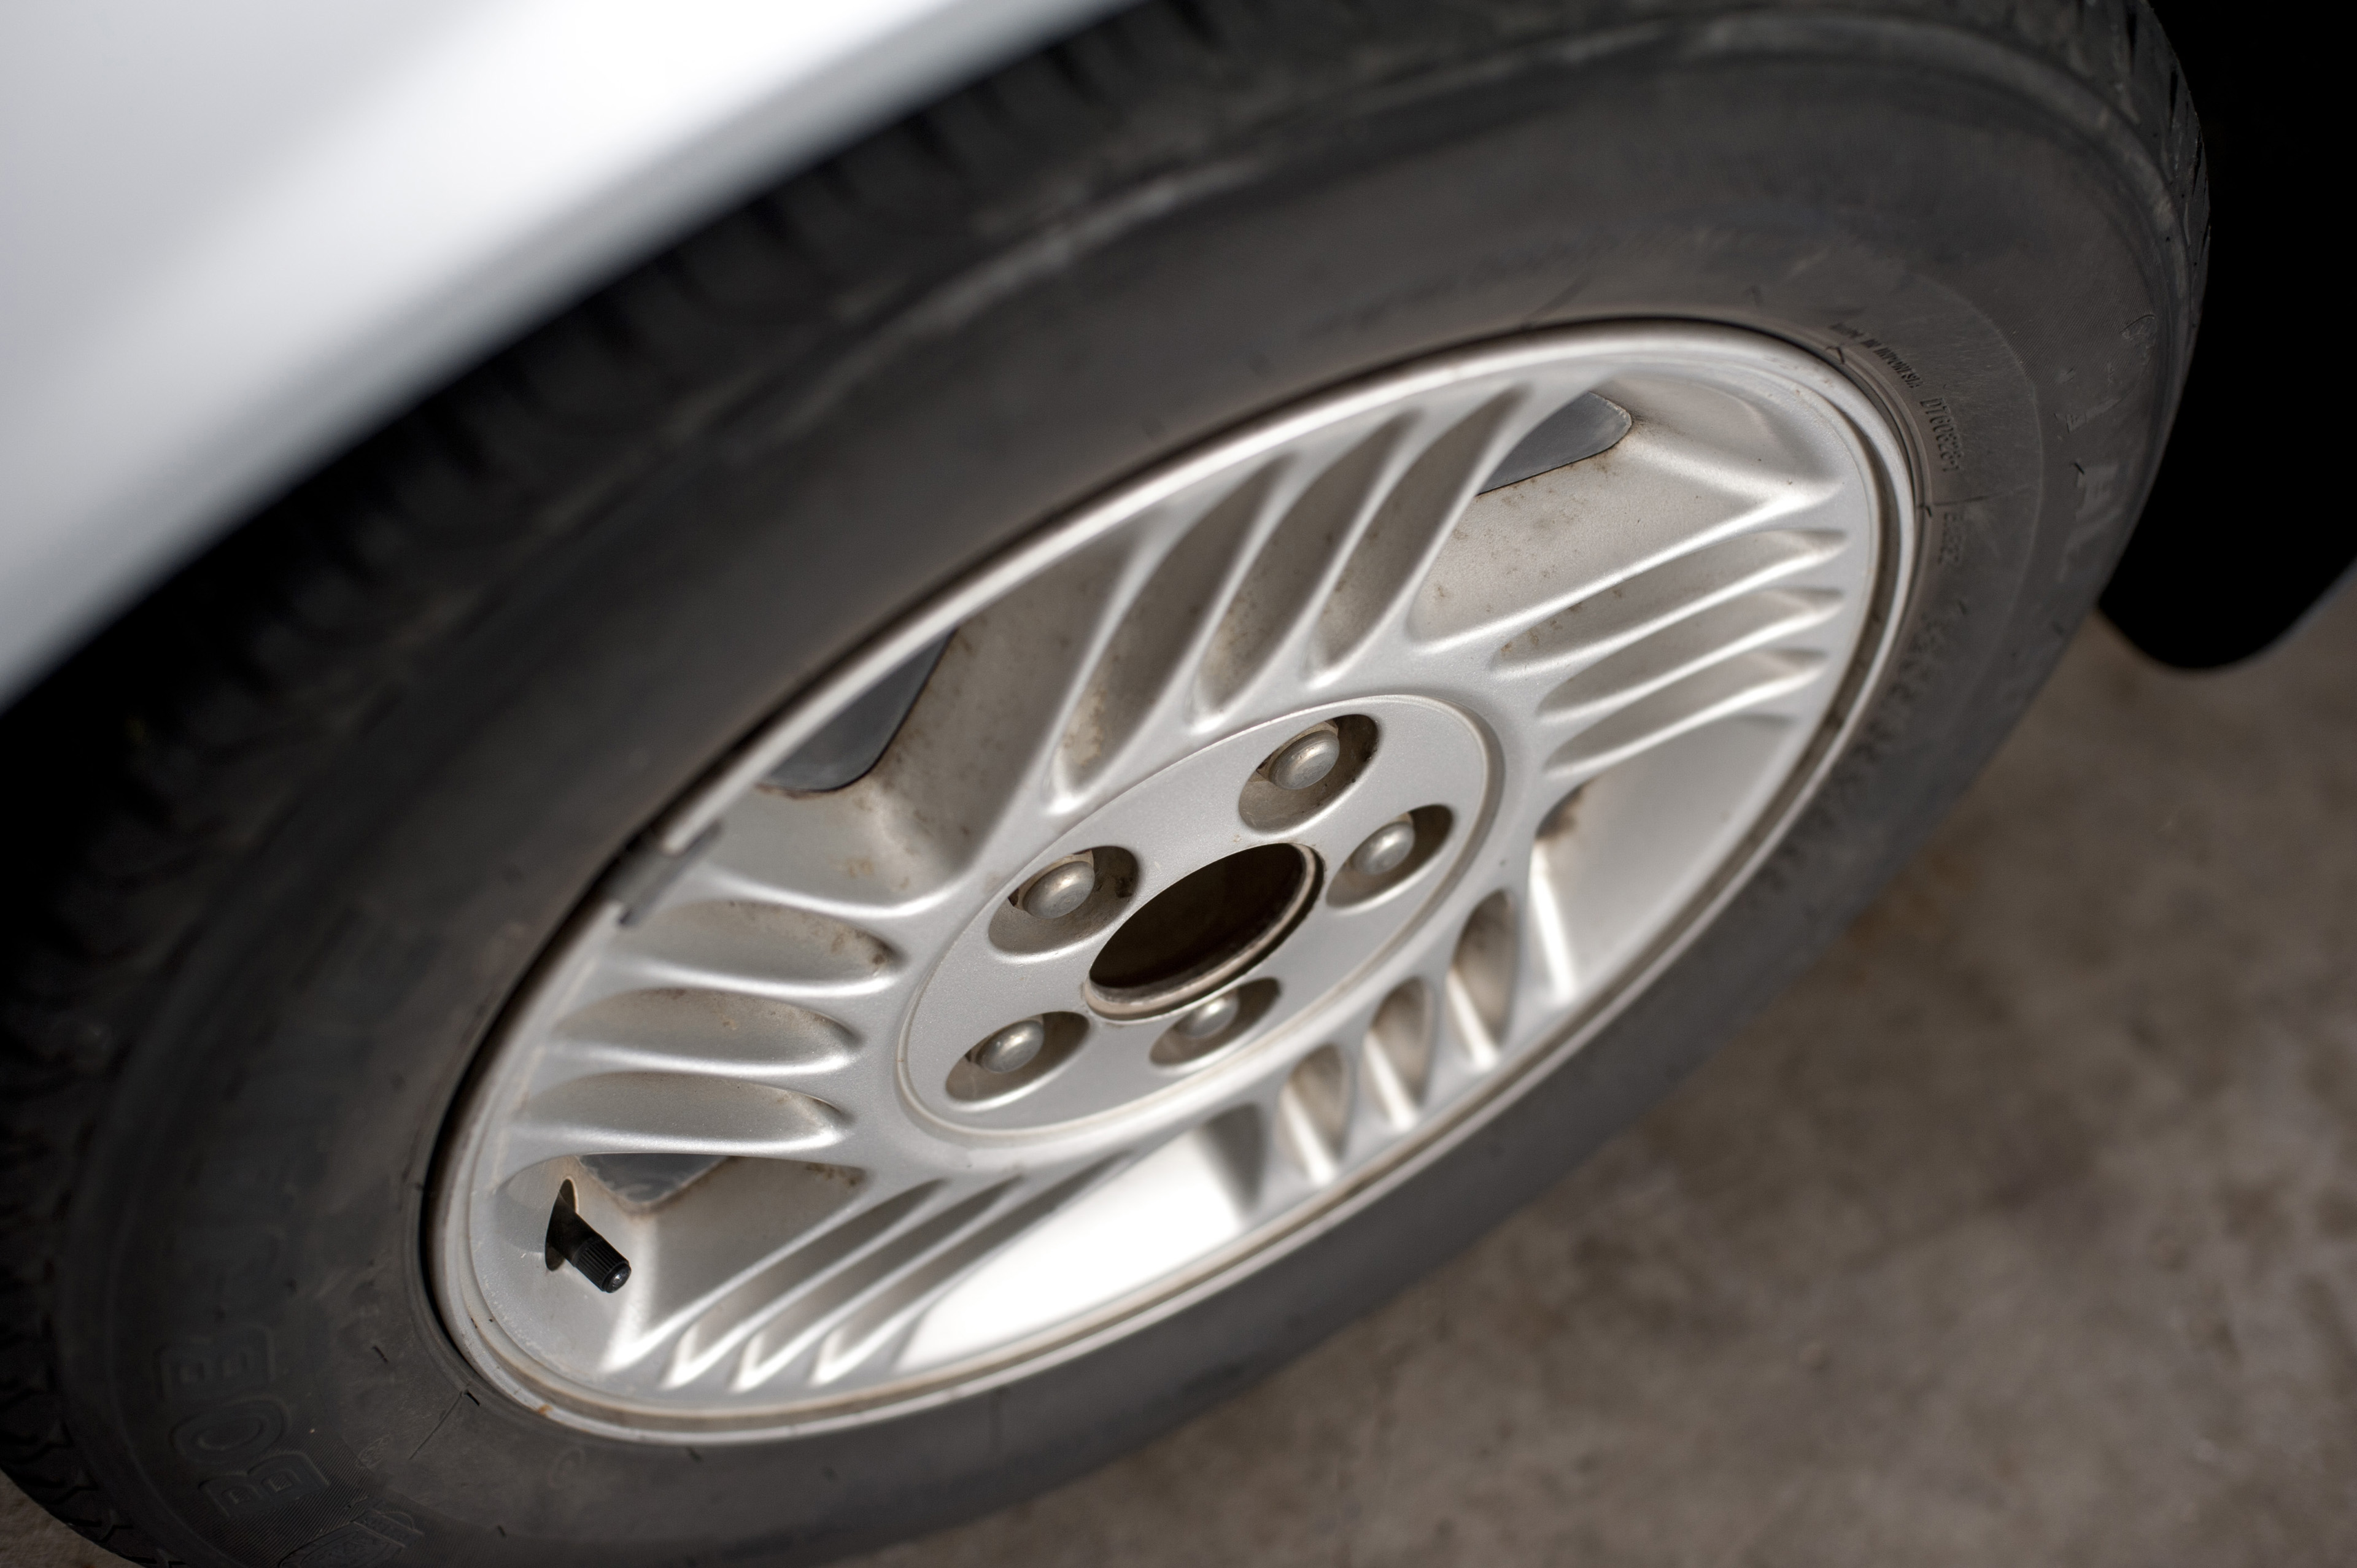 Wheel of a modern car tyre with a metallic ally sports rim viewed high angle parked on tarmac